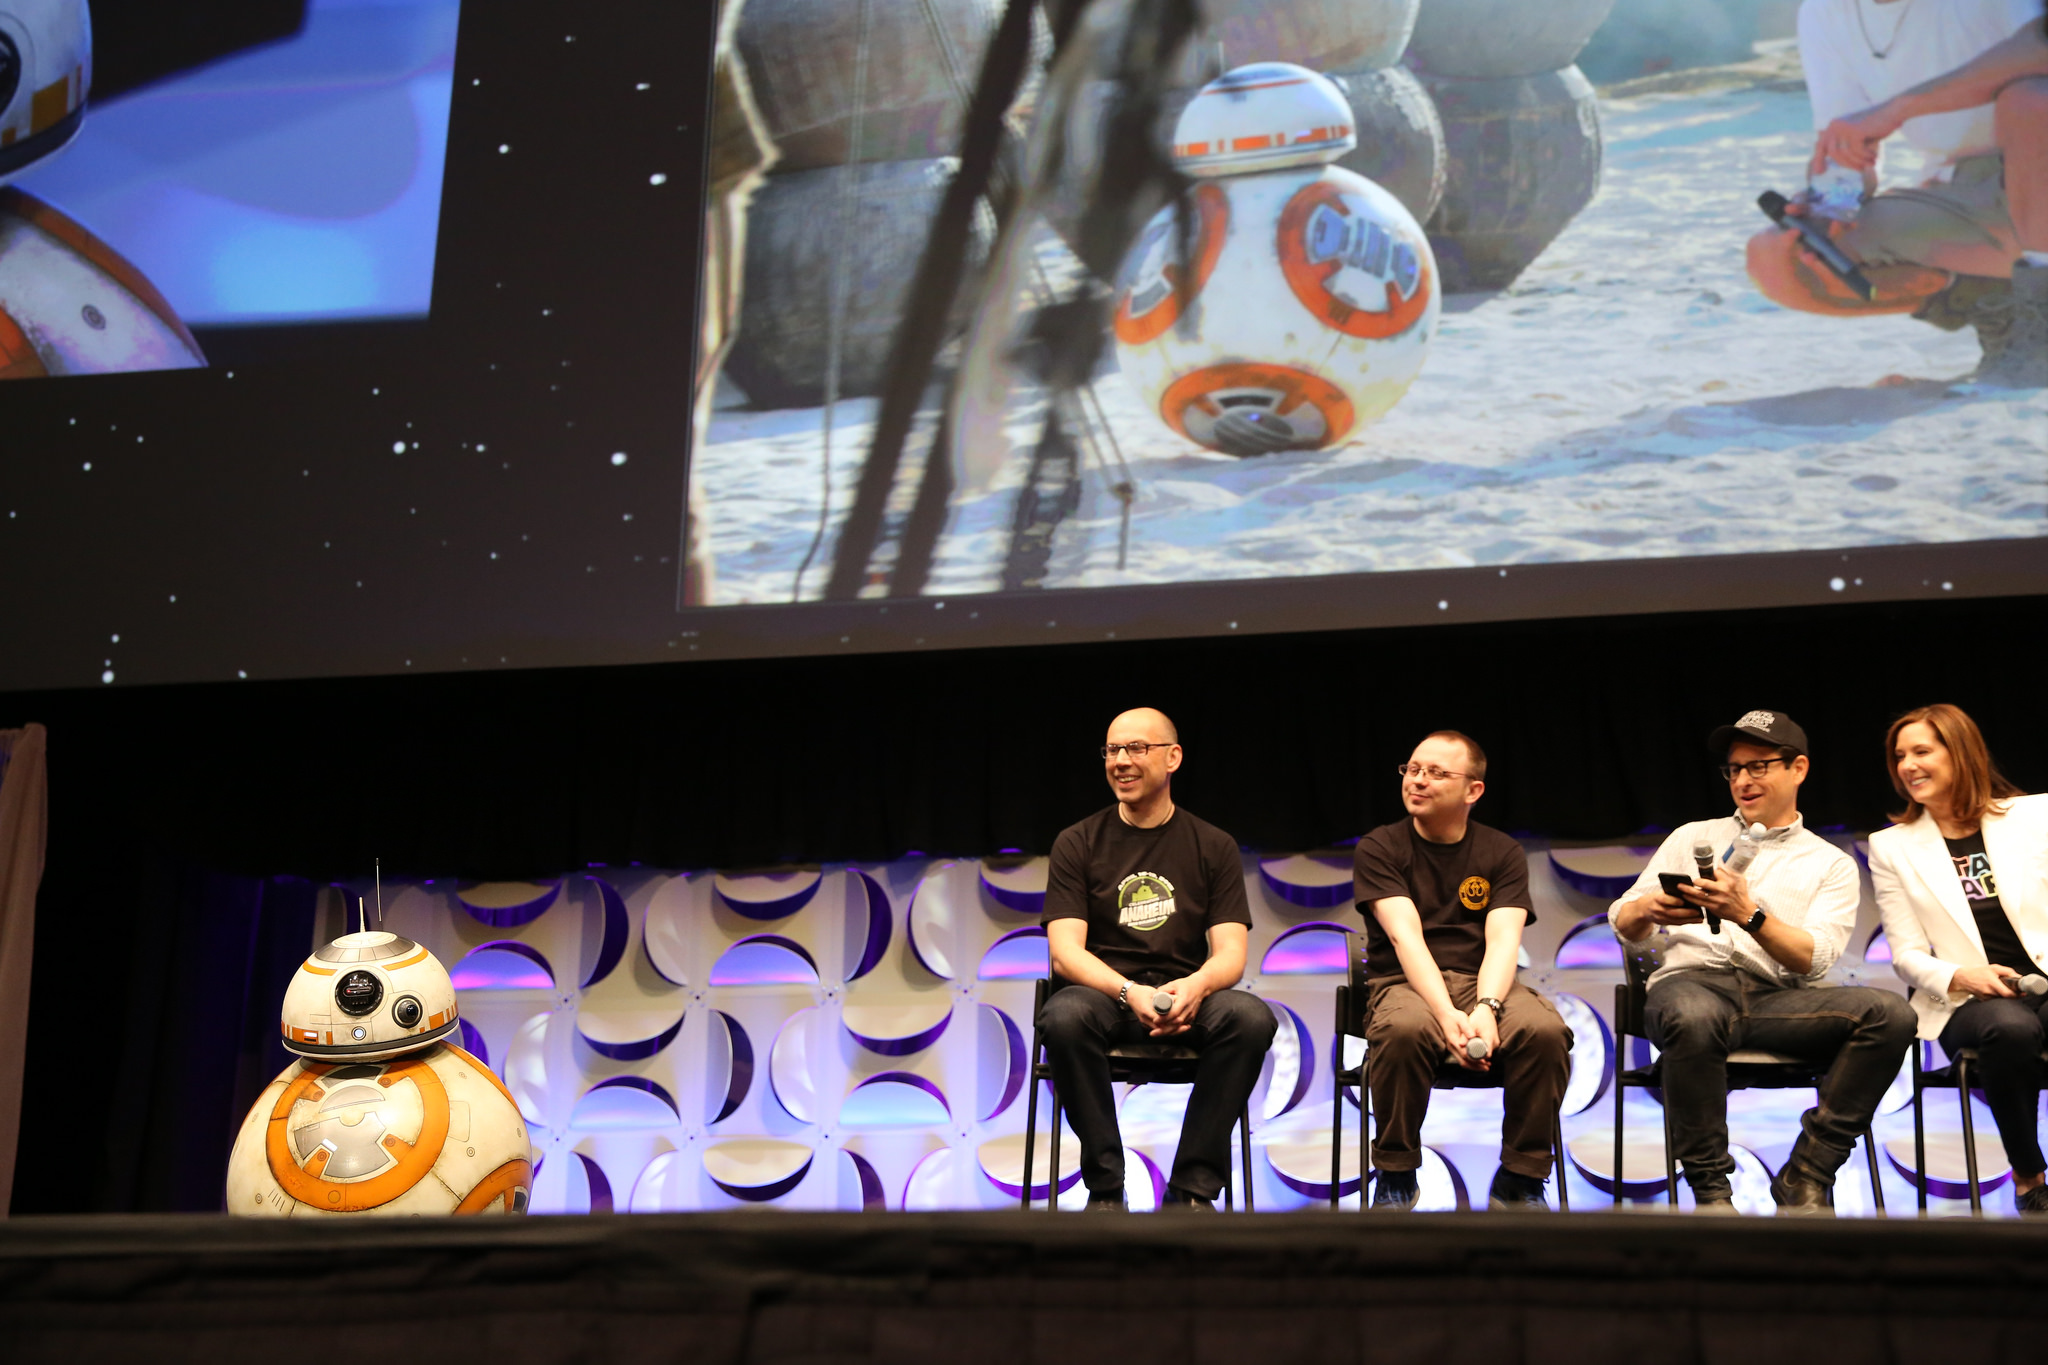 BB-8 at Star Wars Celebration Anaheim